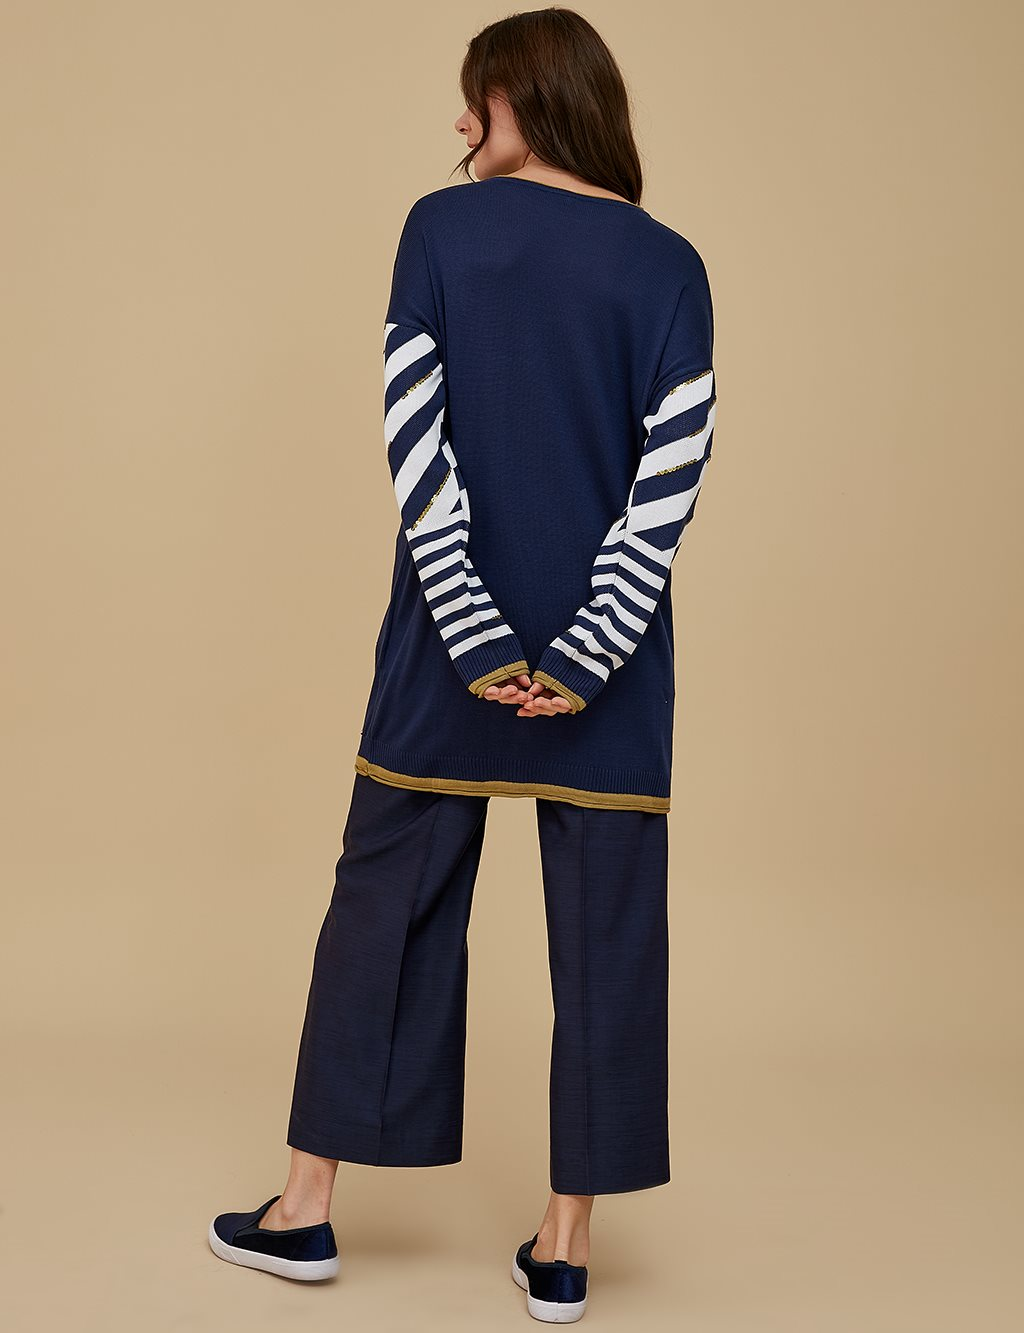 Sequin Detailed Knitwear Tunic A9 TRK61 Navy